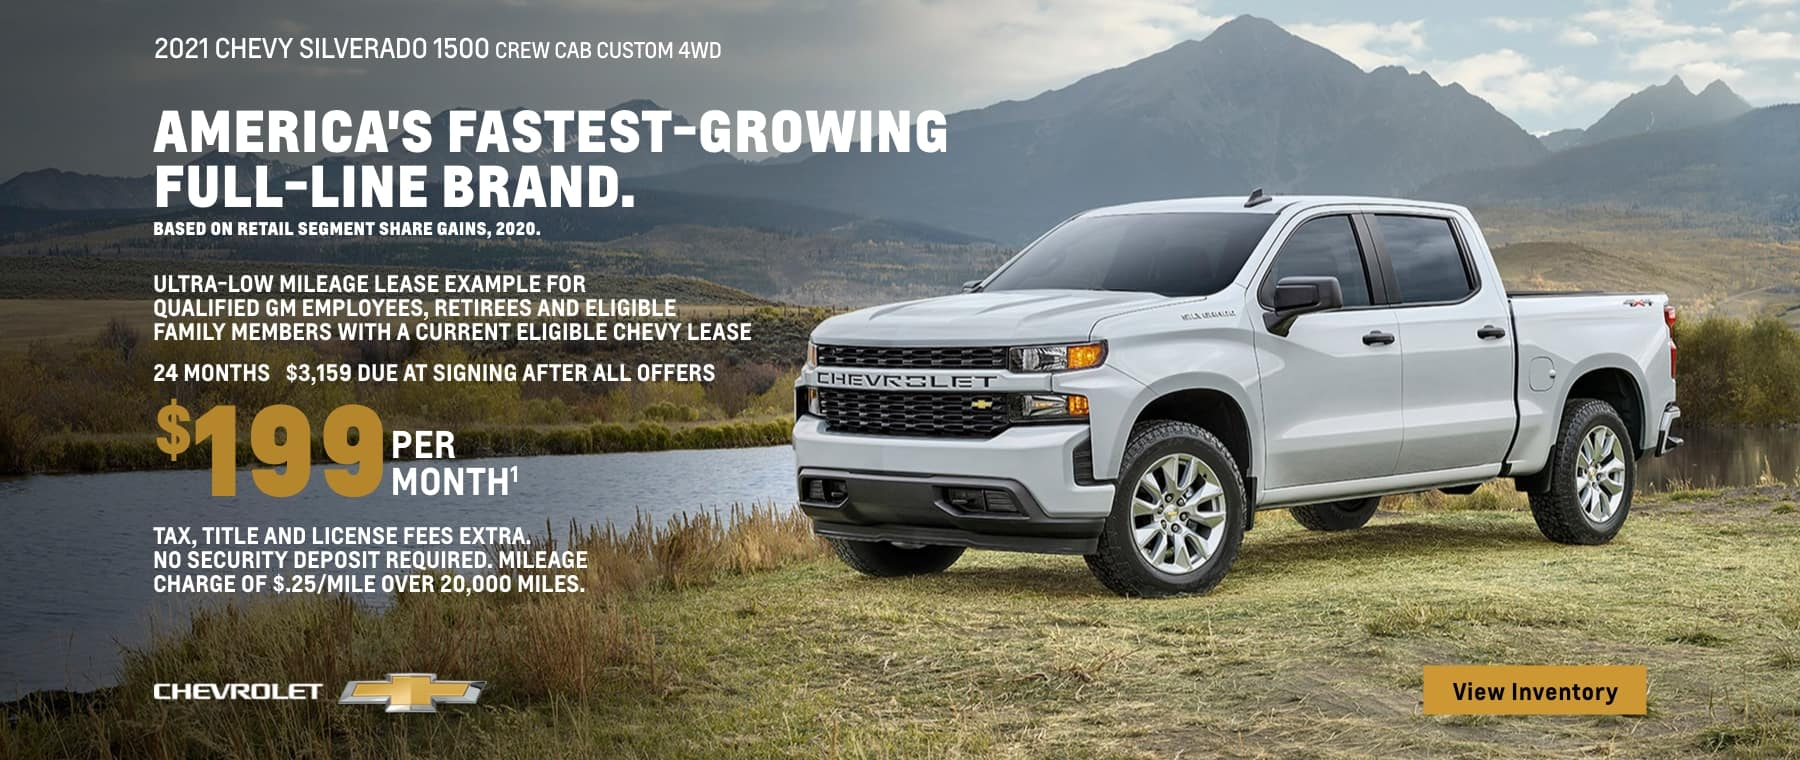 32_MAY_NCR_SILVERADO_$199 $3,159 DAS_1800x760